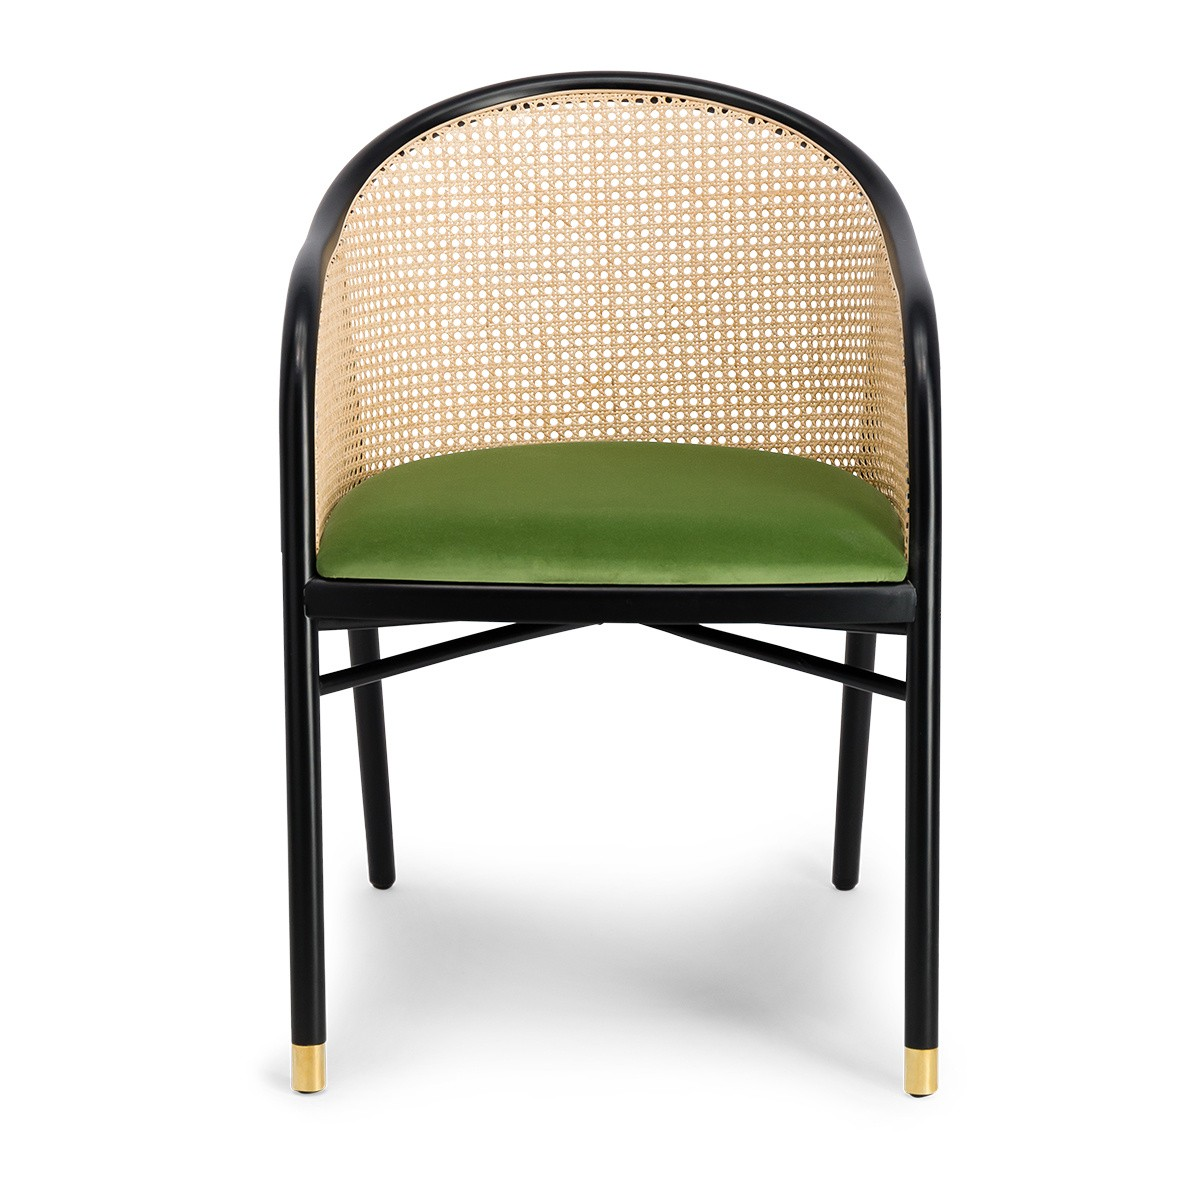 Cavallo Armchair, Almond Green Velvet with Black Lacquered Frame